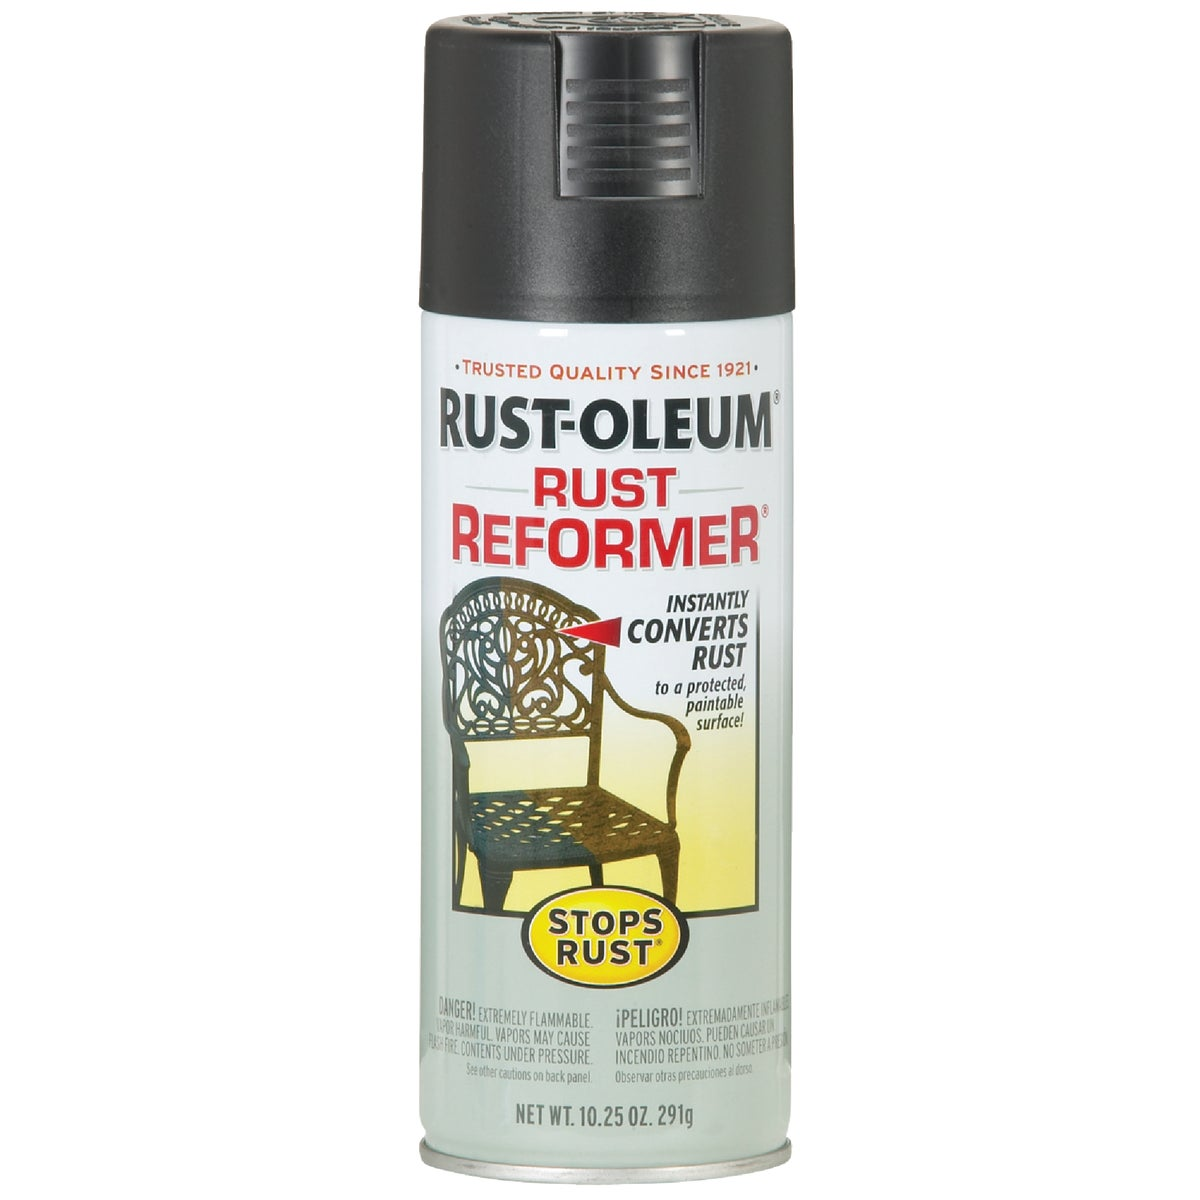 10OZ SPRAY RUST REFORMER - 215215 by Rustoleum